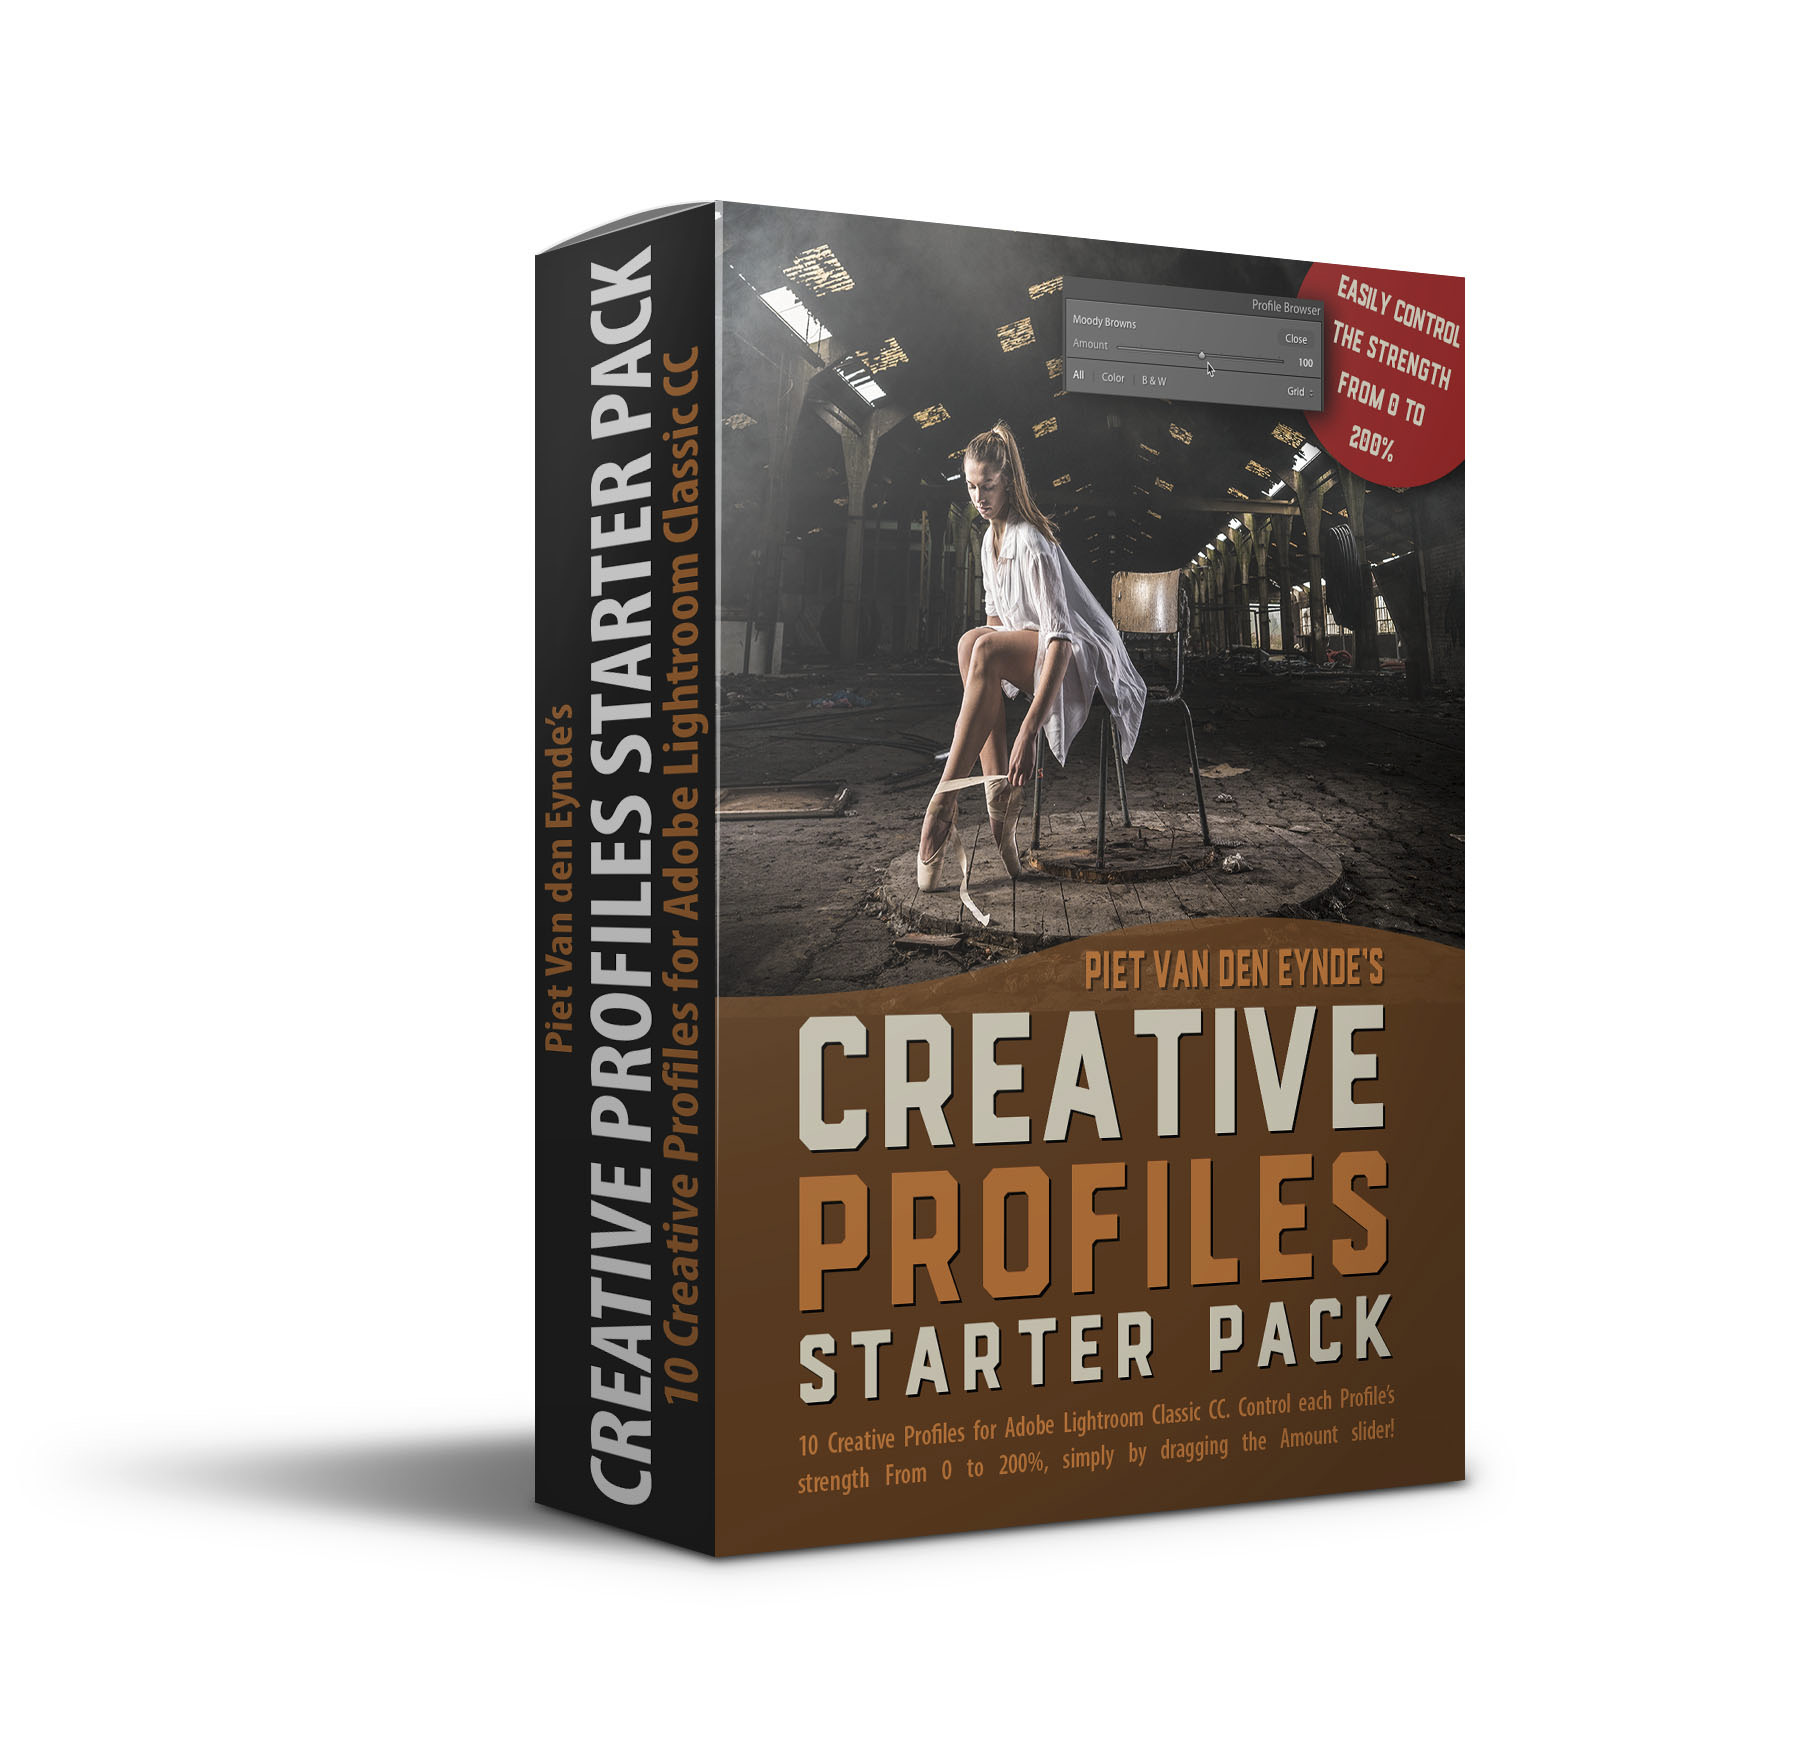 NEW: Creative Profiles Starter Pack — MoreThanWords be